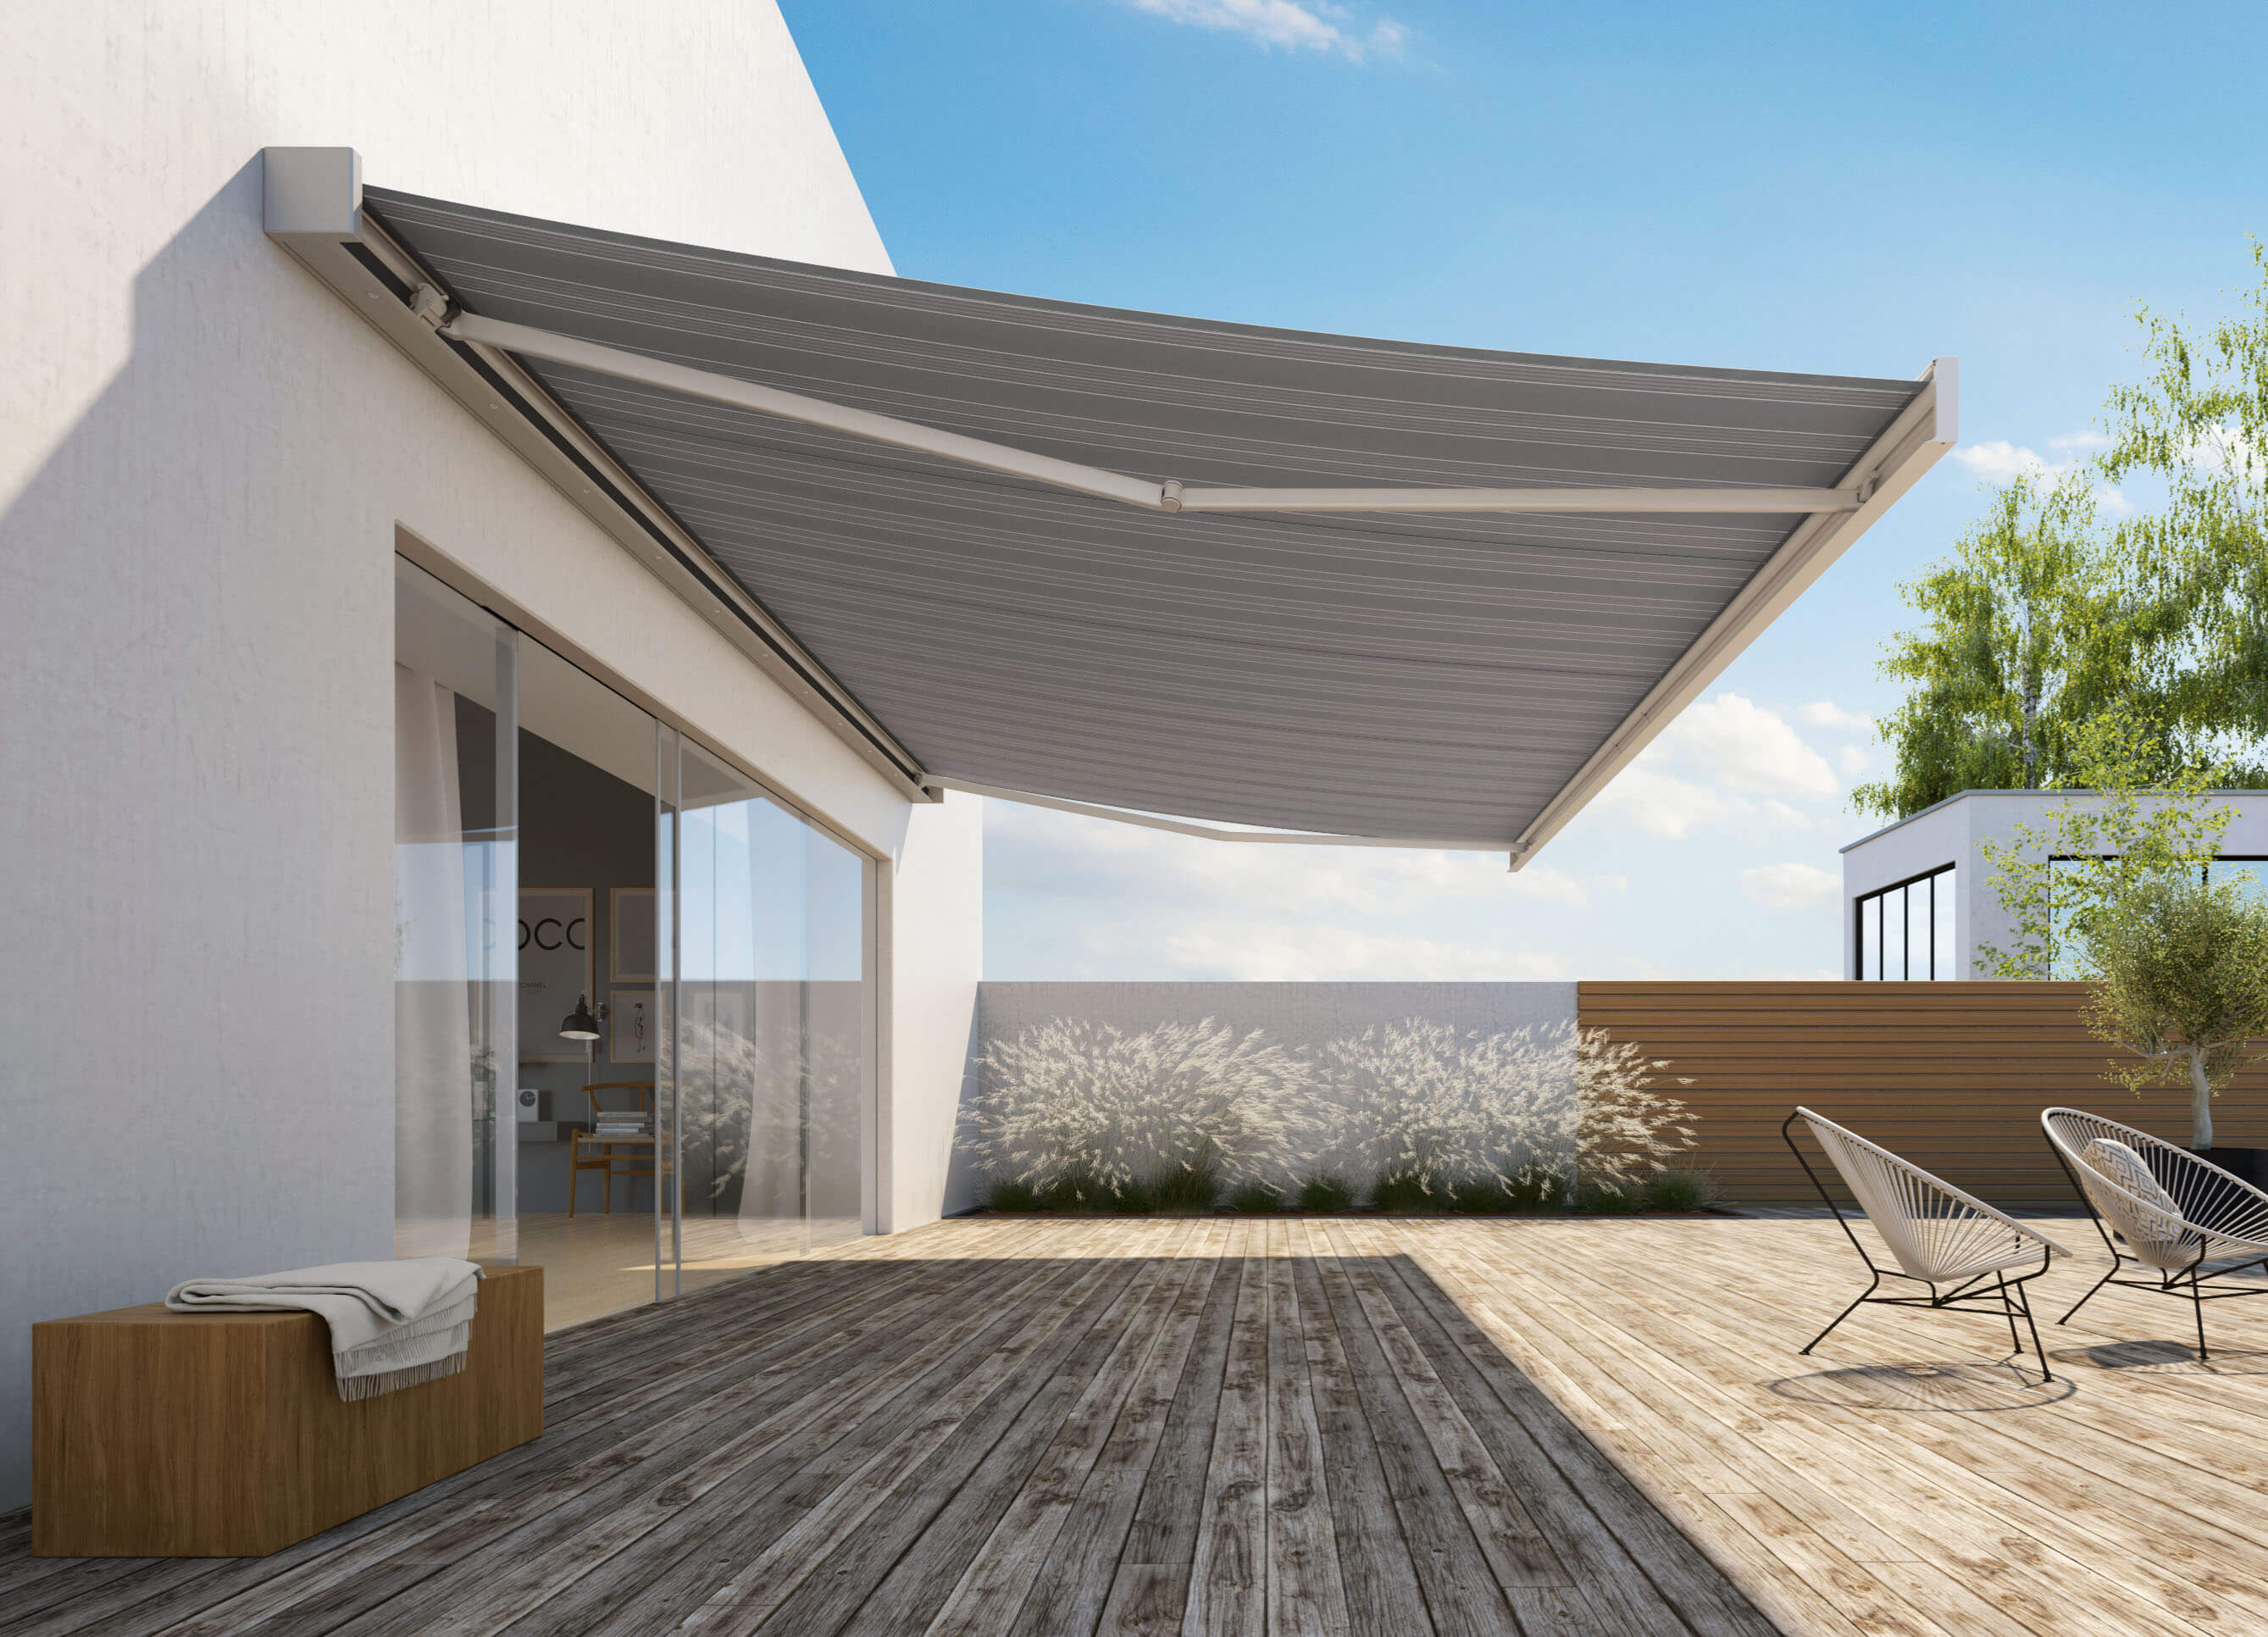 Everything You Need To Know About Retractable Canvas Awning